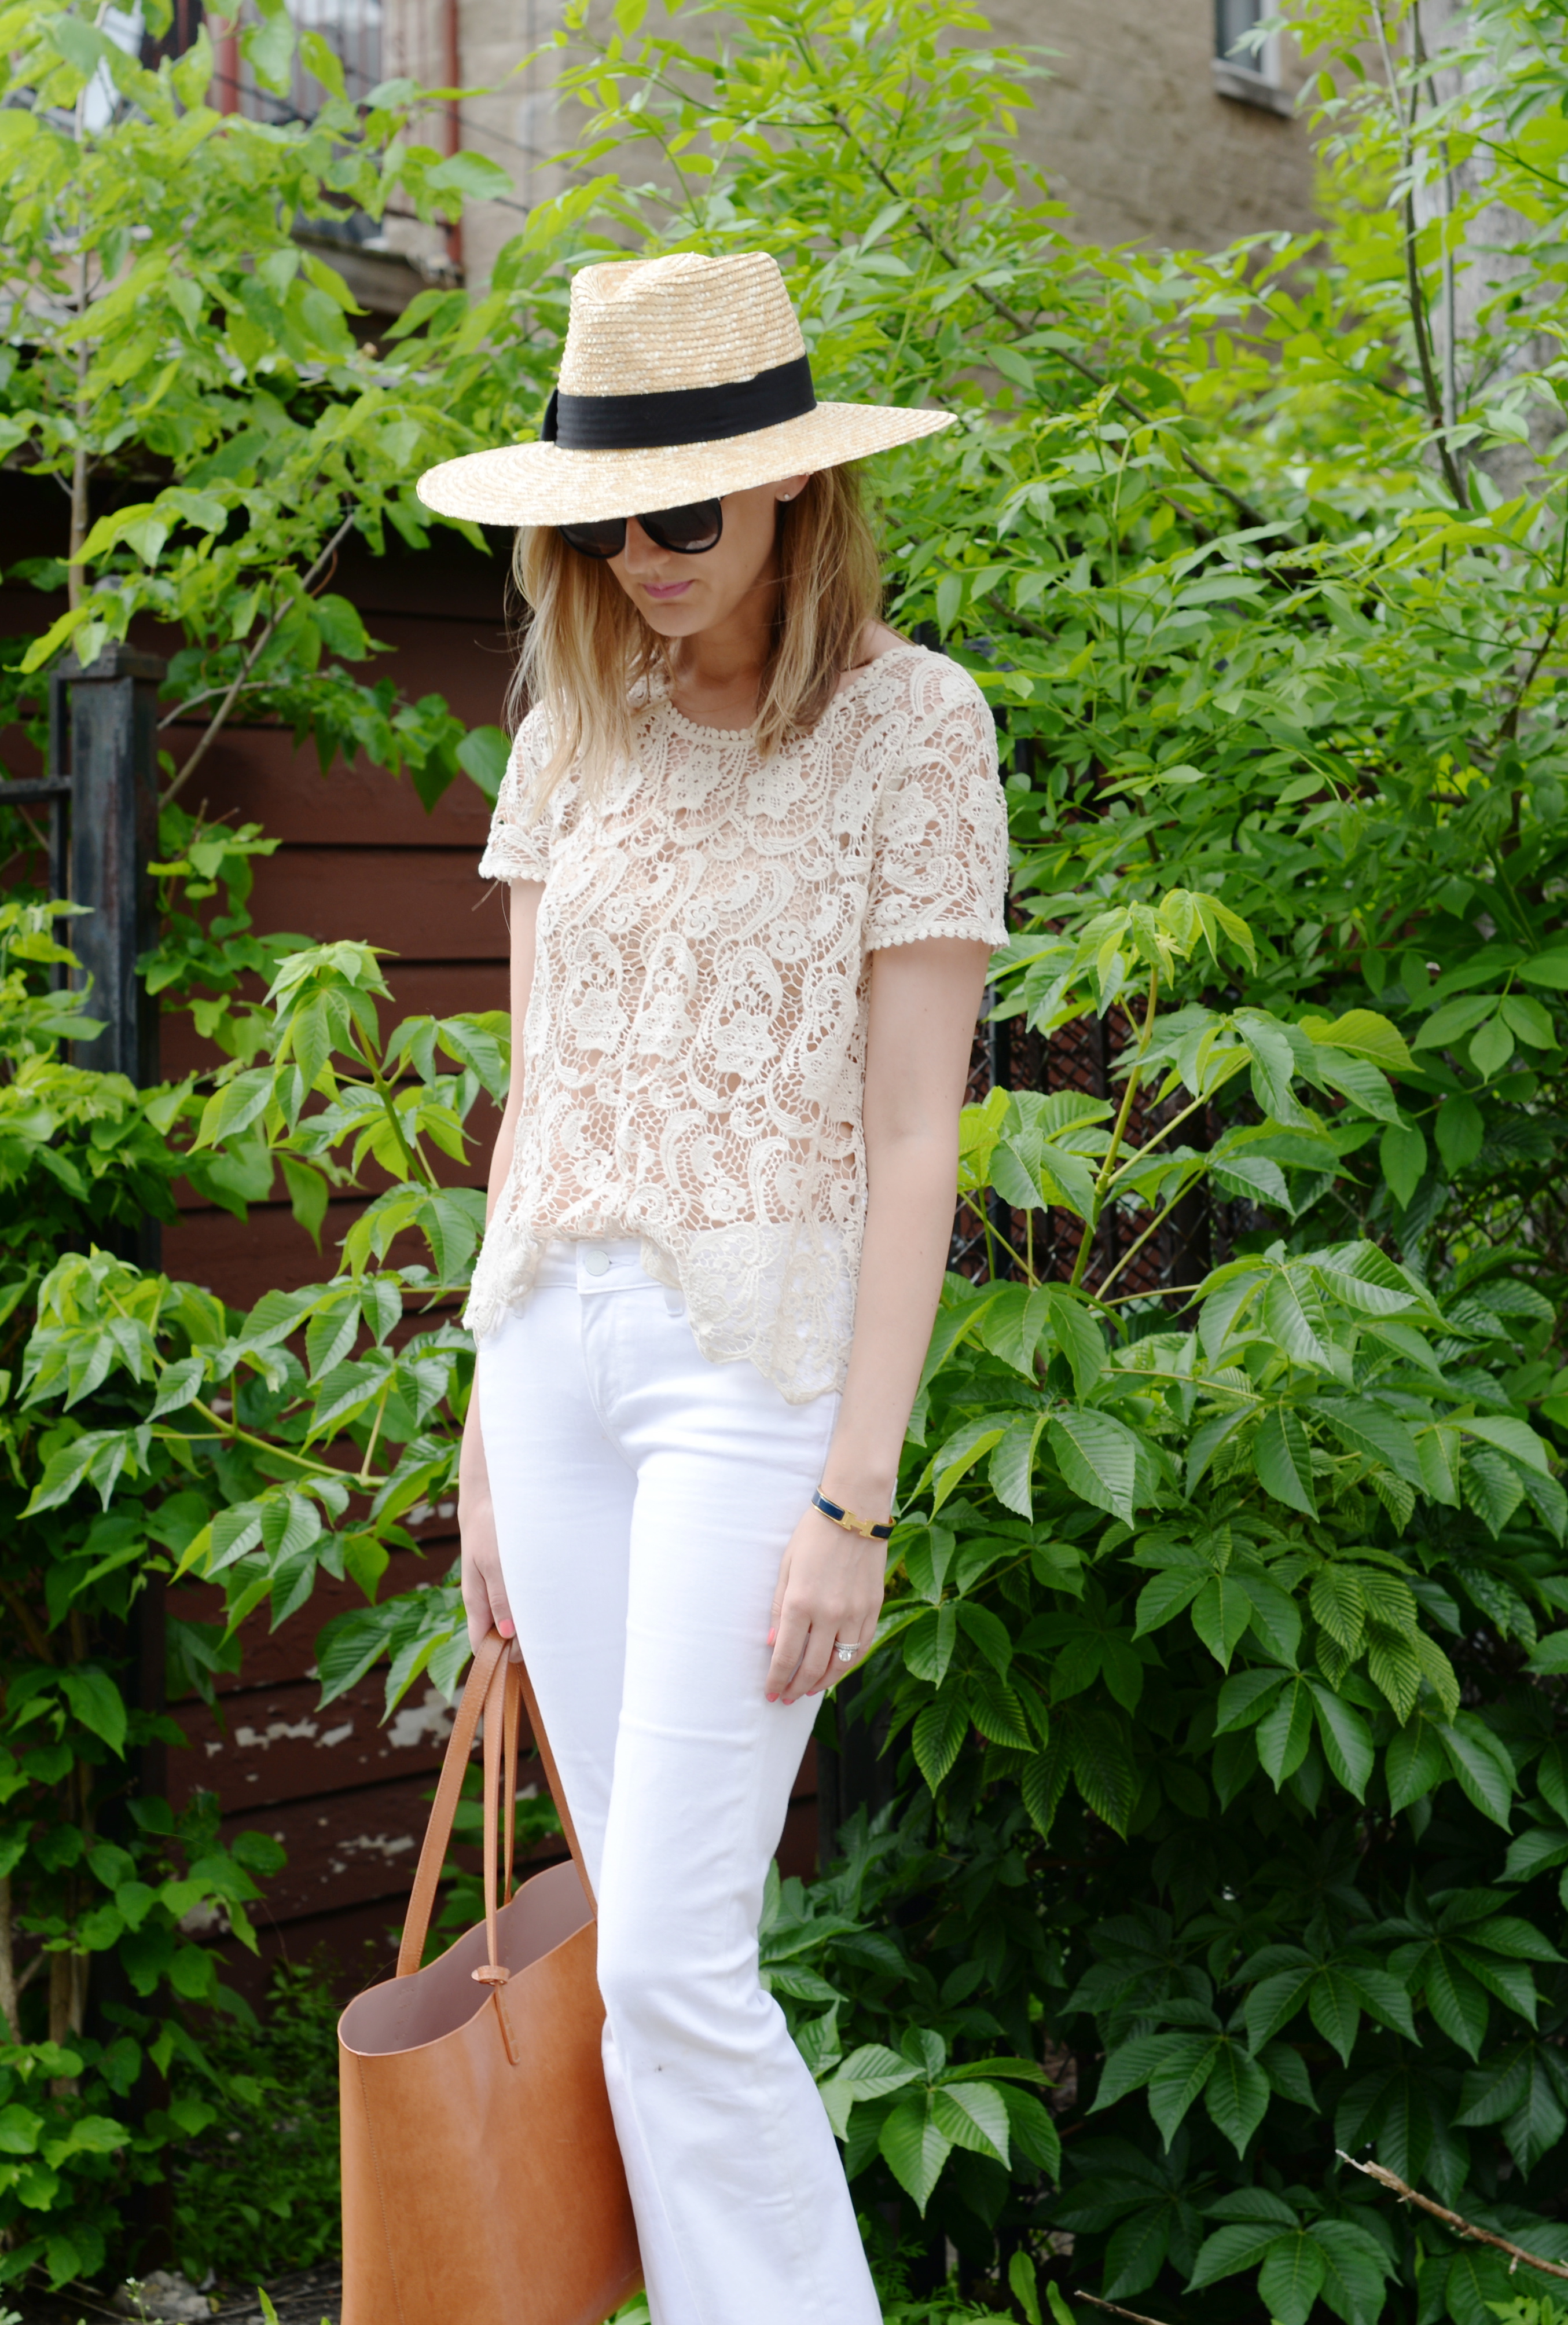 brixton joanna hat, joie lace tee, white flare jeans